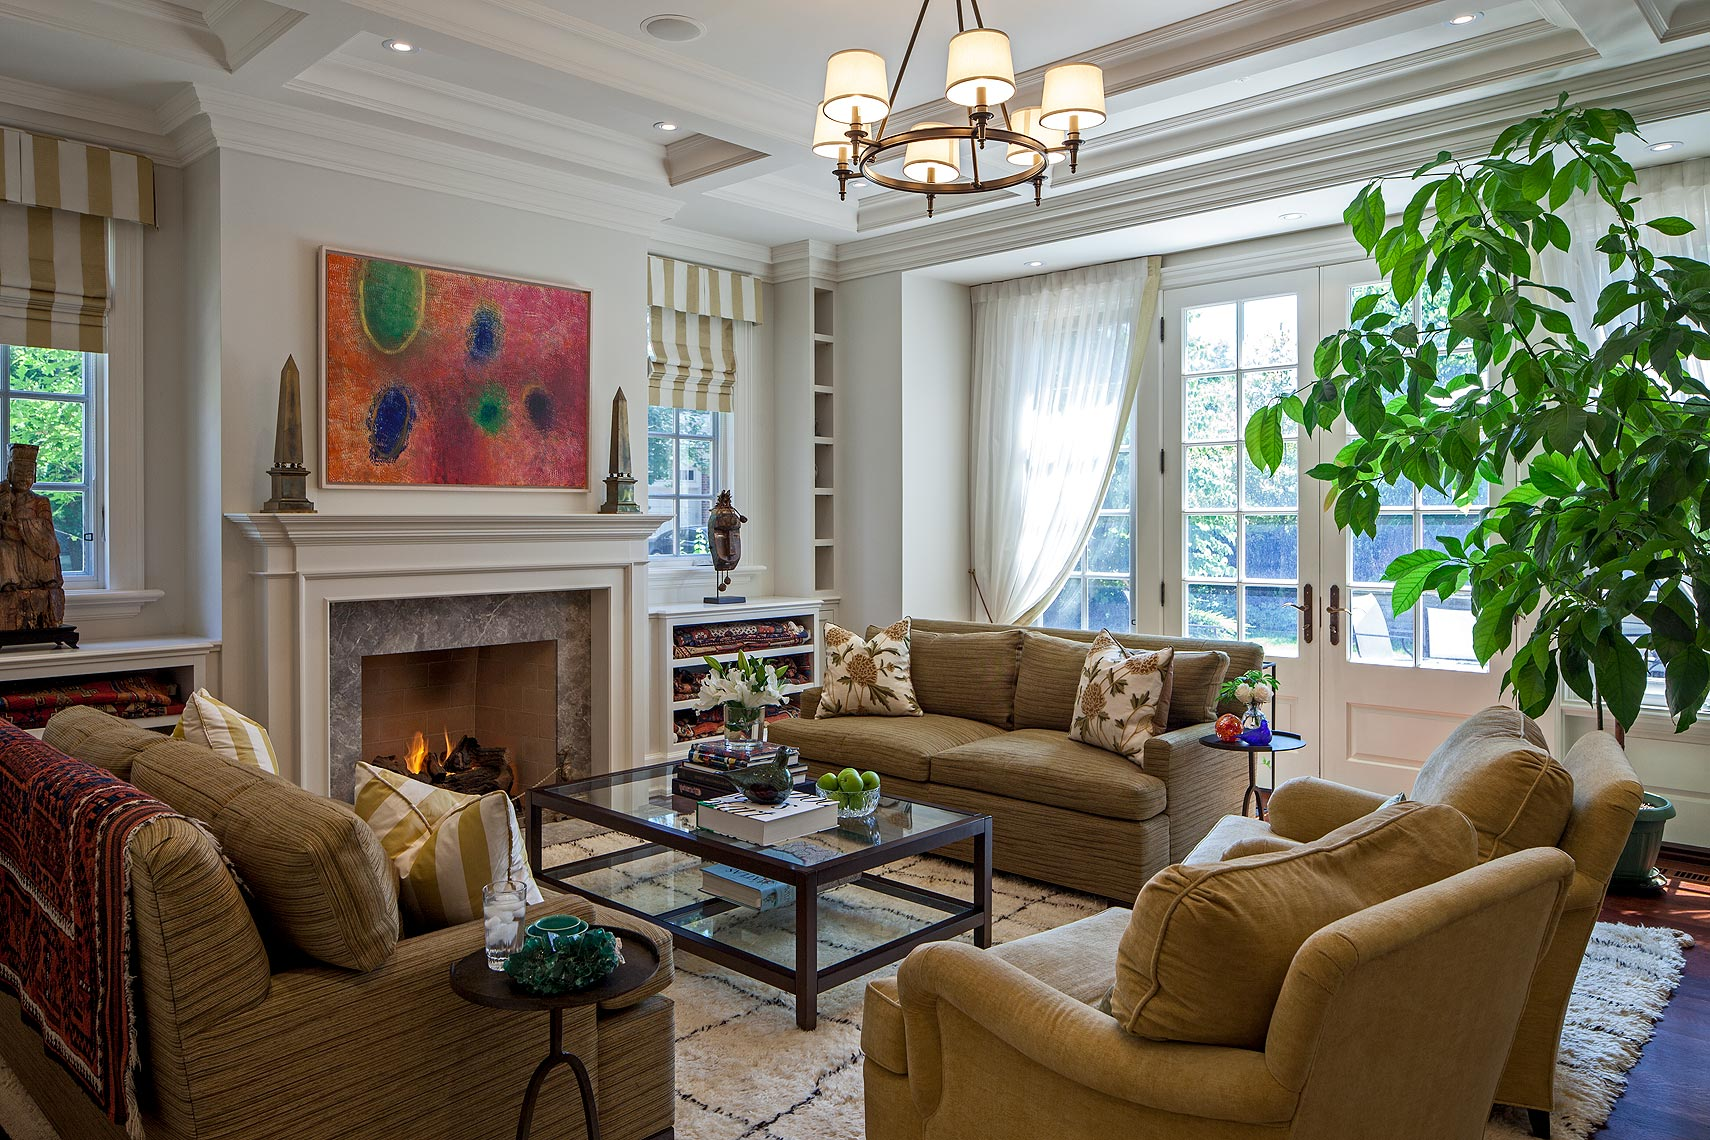 """Perfectly symmetrical, the complex wall and ceiling details are both elegant and functional. The marble fireplace centres a carefully planned storage wall that flanks the windows with small niches housing gemstone specimens collected by the owners, both geologists. The painting is """"Celestial Gathering"""" by historical Canadian artist Michael Forster. Below a historic sculpture and mask, large shelves provide storage for several antique carpets. The coffee table and seating were existing; new upholstery stands up to use by children and pets, as does the handmade Jan Kath carpet. The crewel work cushion covers reflect the owner's love of textiles."""